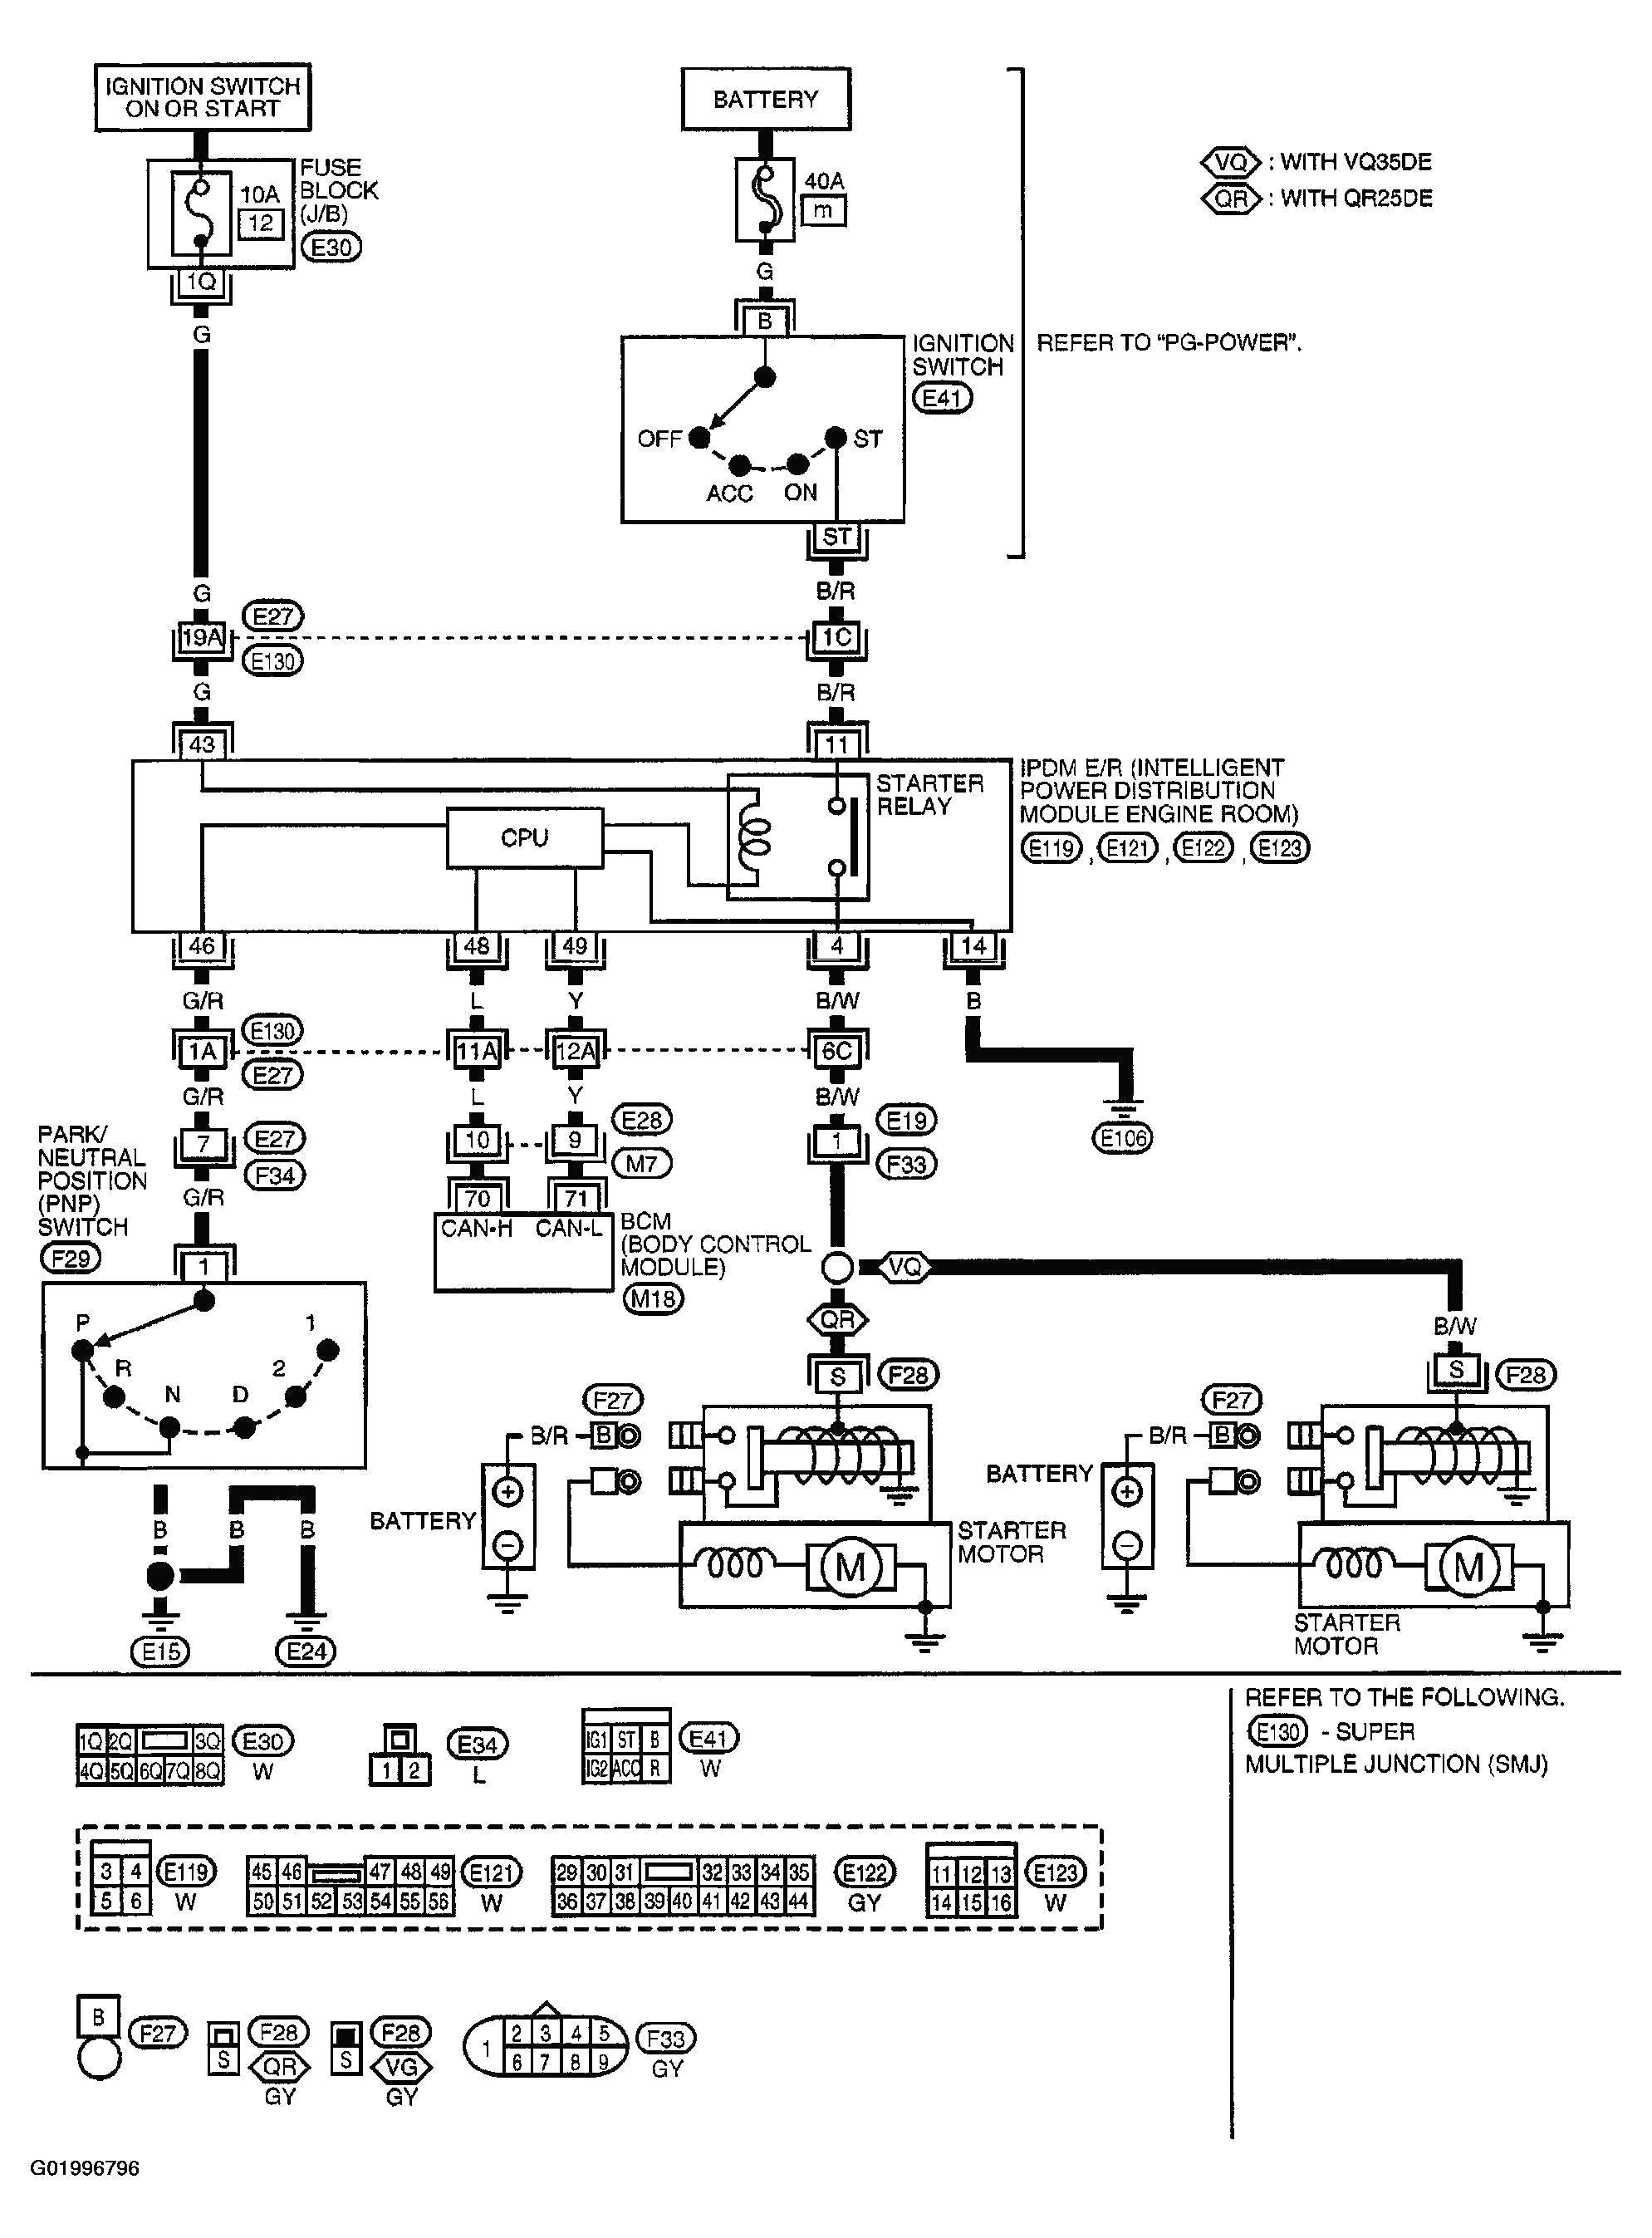 Nissan Altima 2000 Fuse Box Diagram